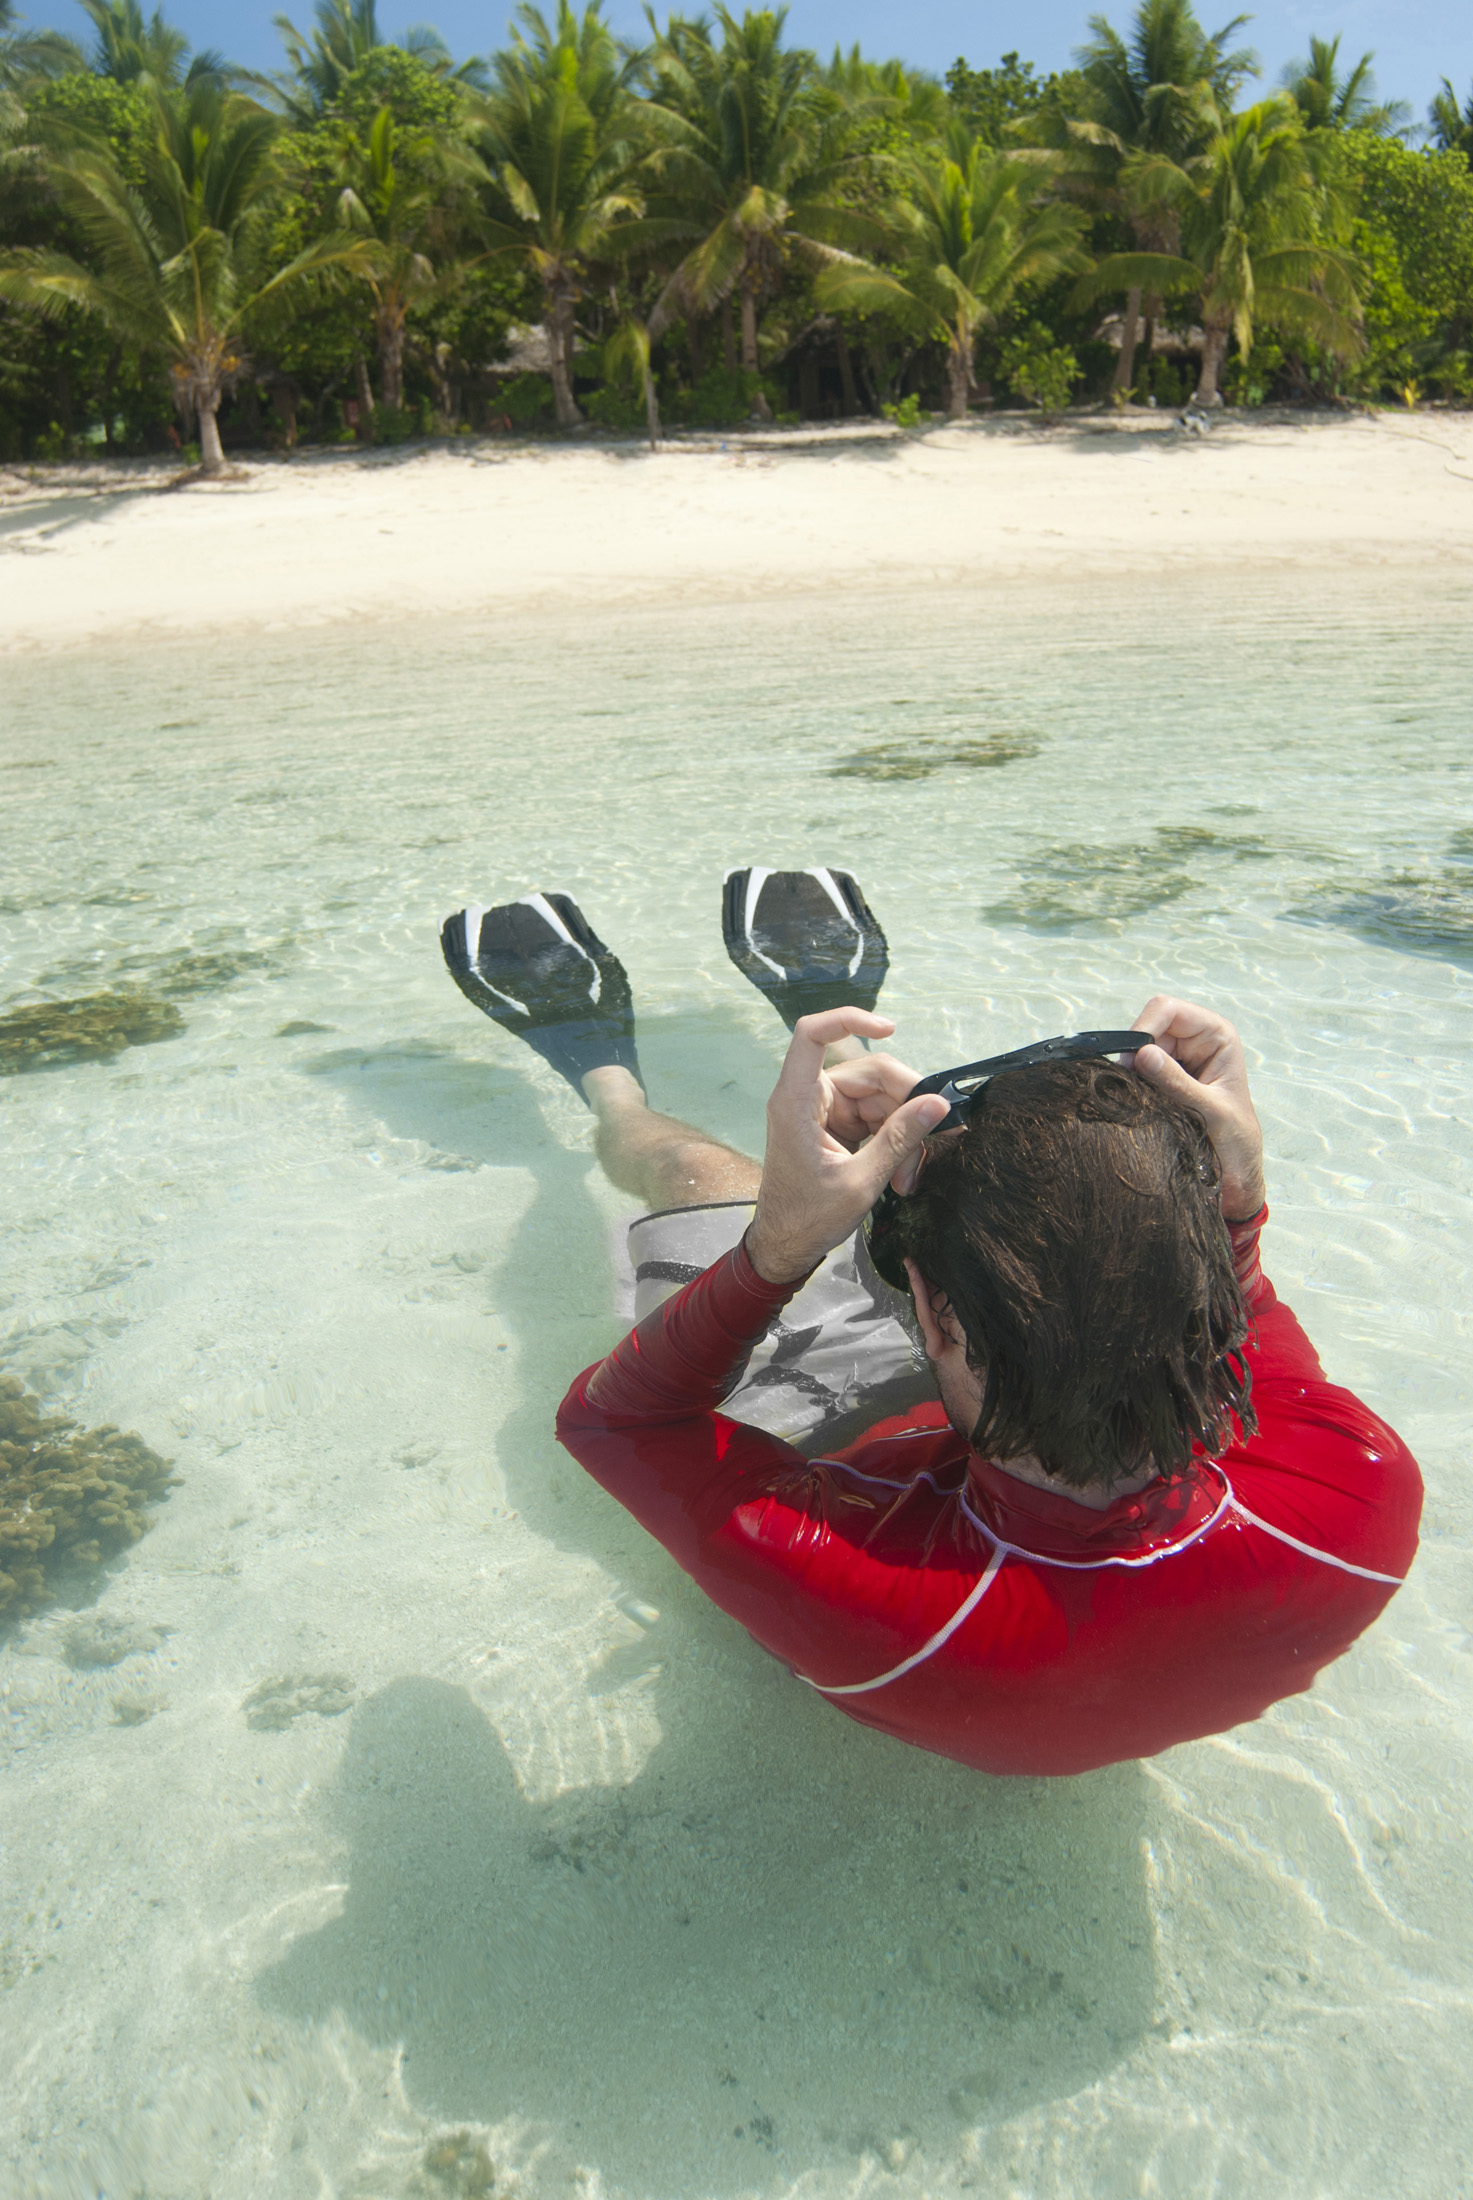 Man snorkeling in shallow crystal clear water off a tropical island beach floating on his back clearing his goggles